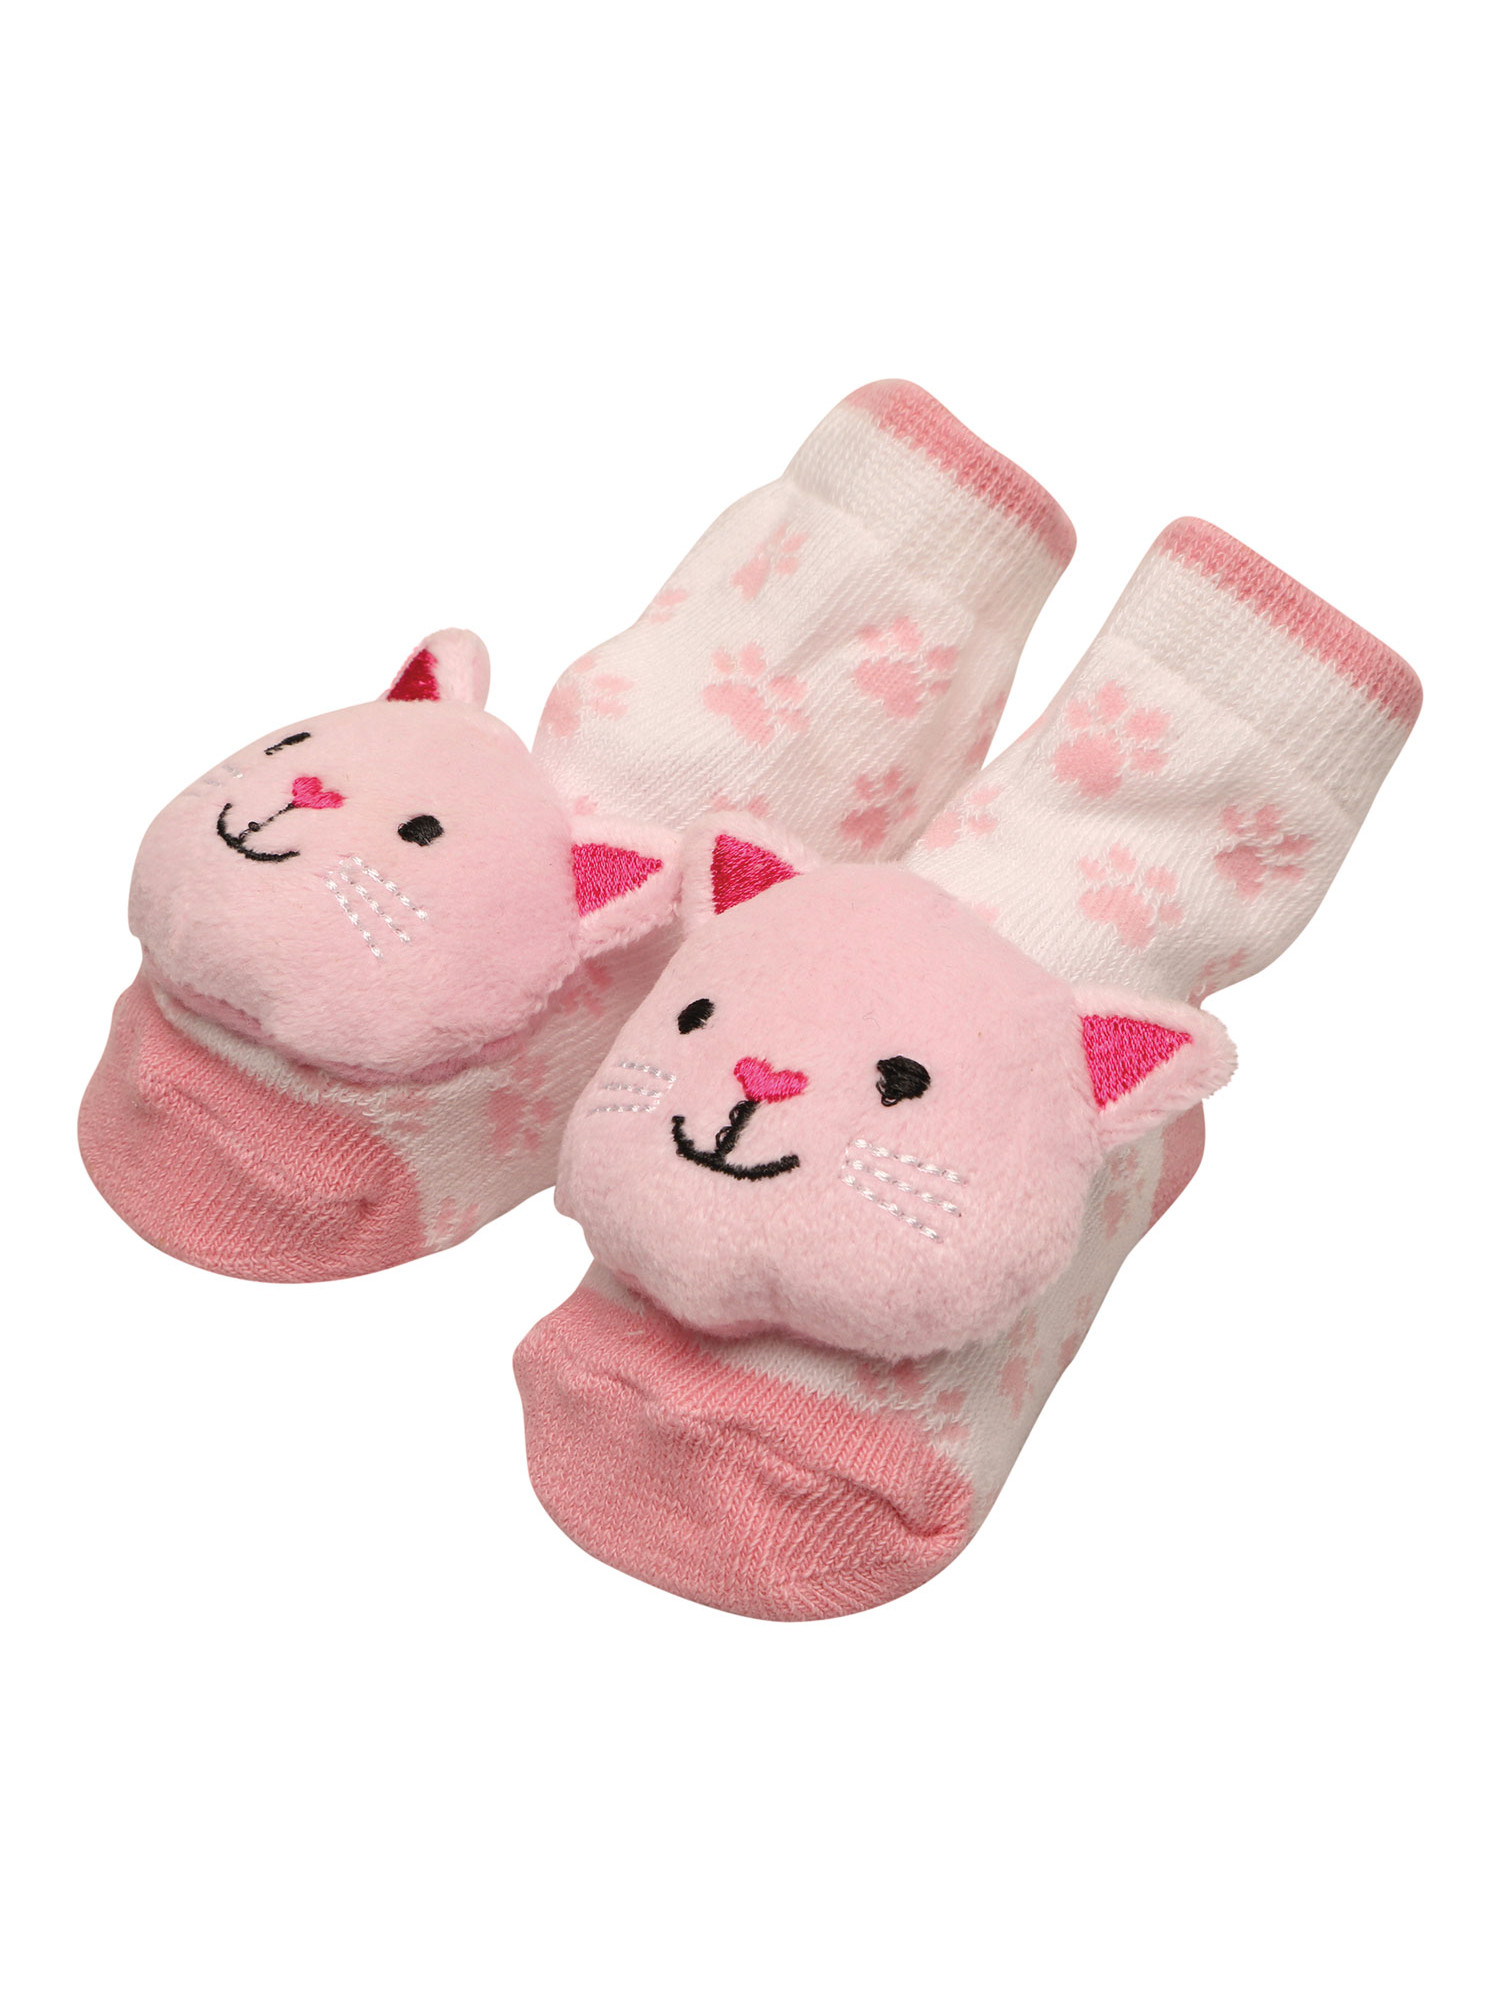 C.R. Gibson Rattle Toe Infant Socks - Baby Booties with Attached Shaker Toy